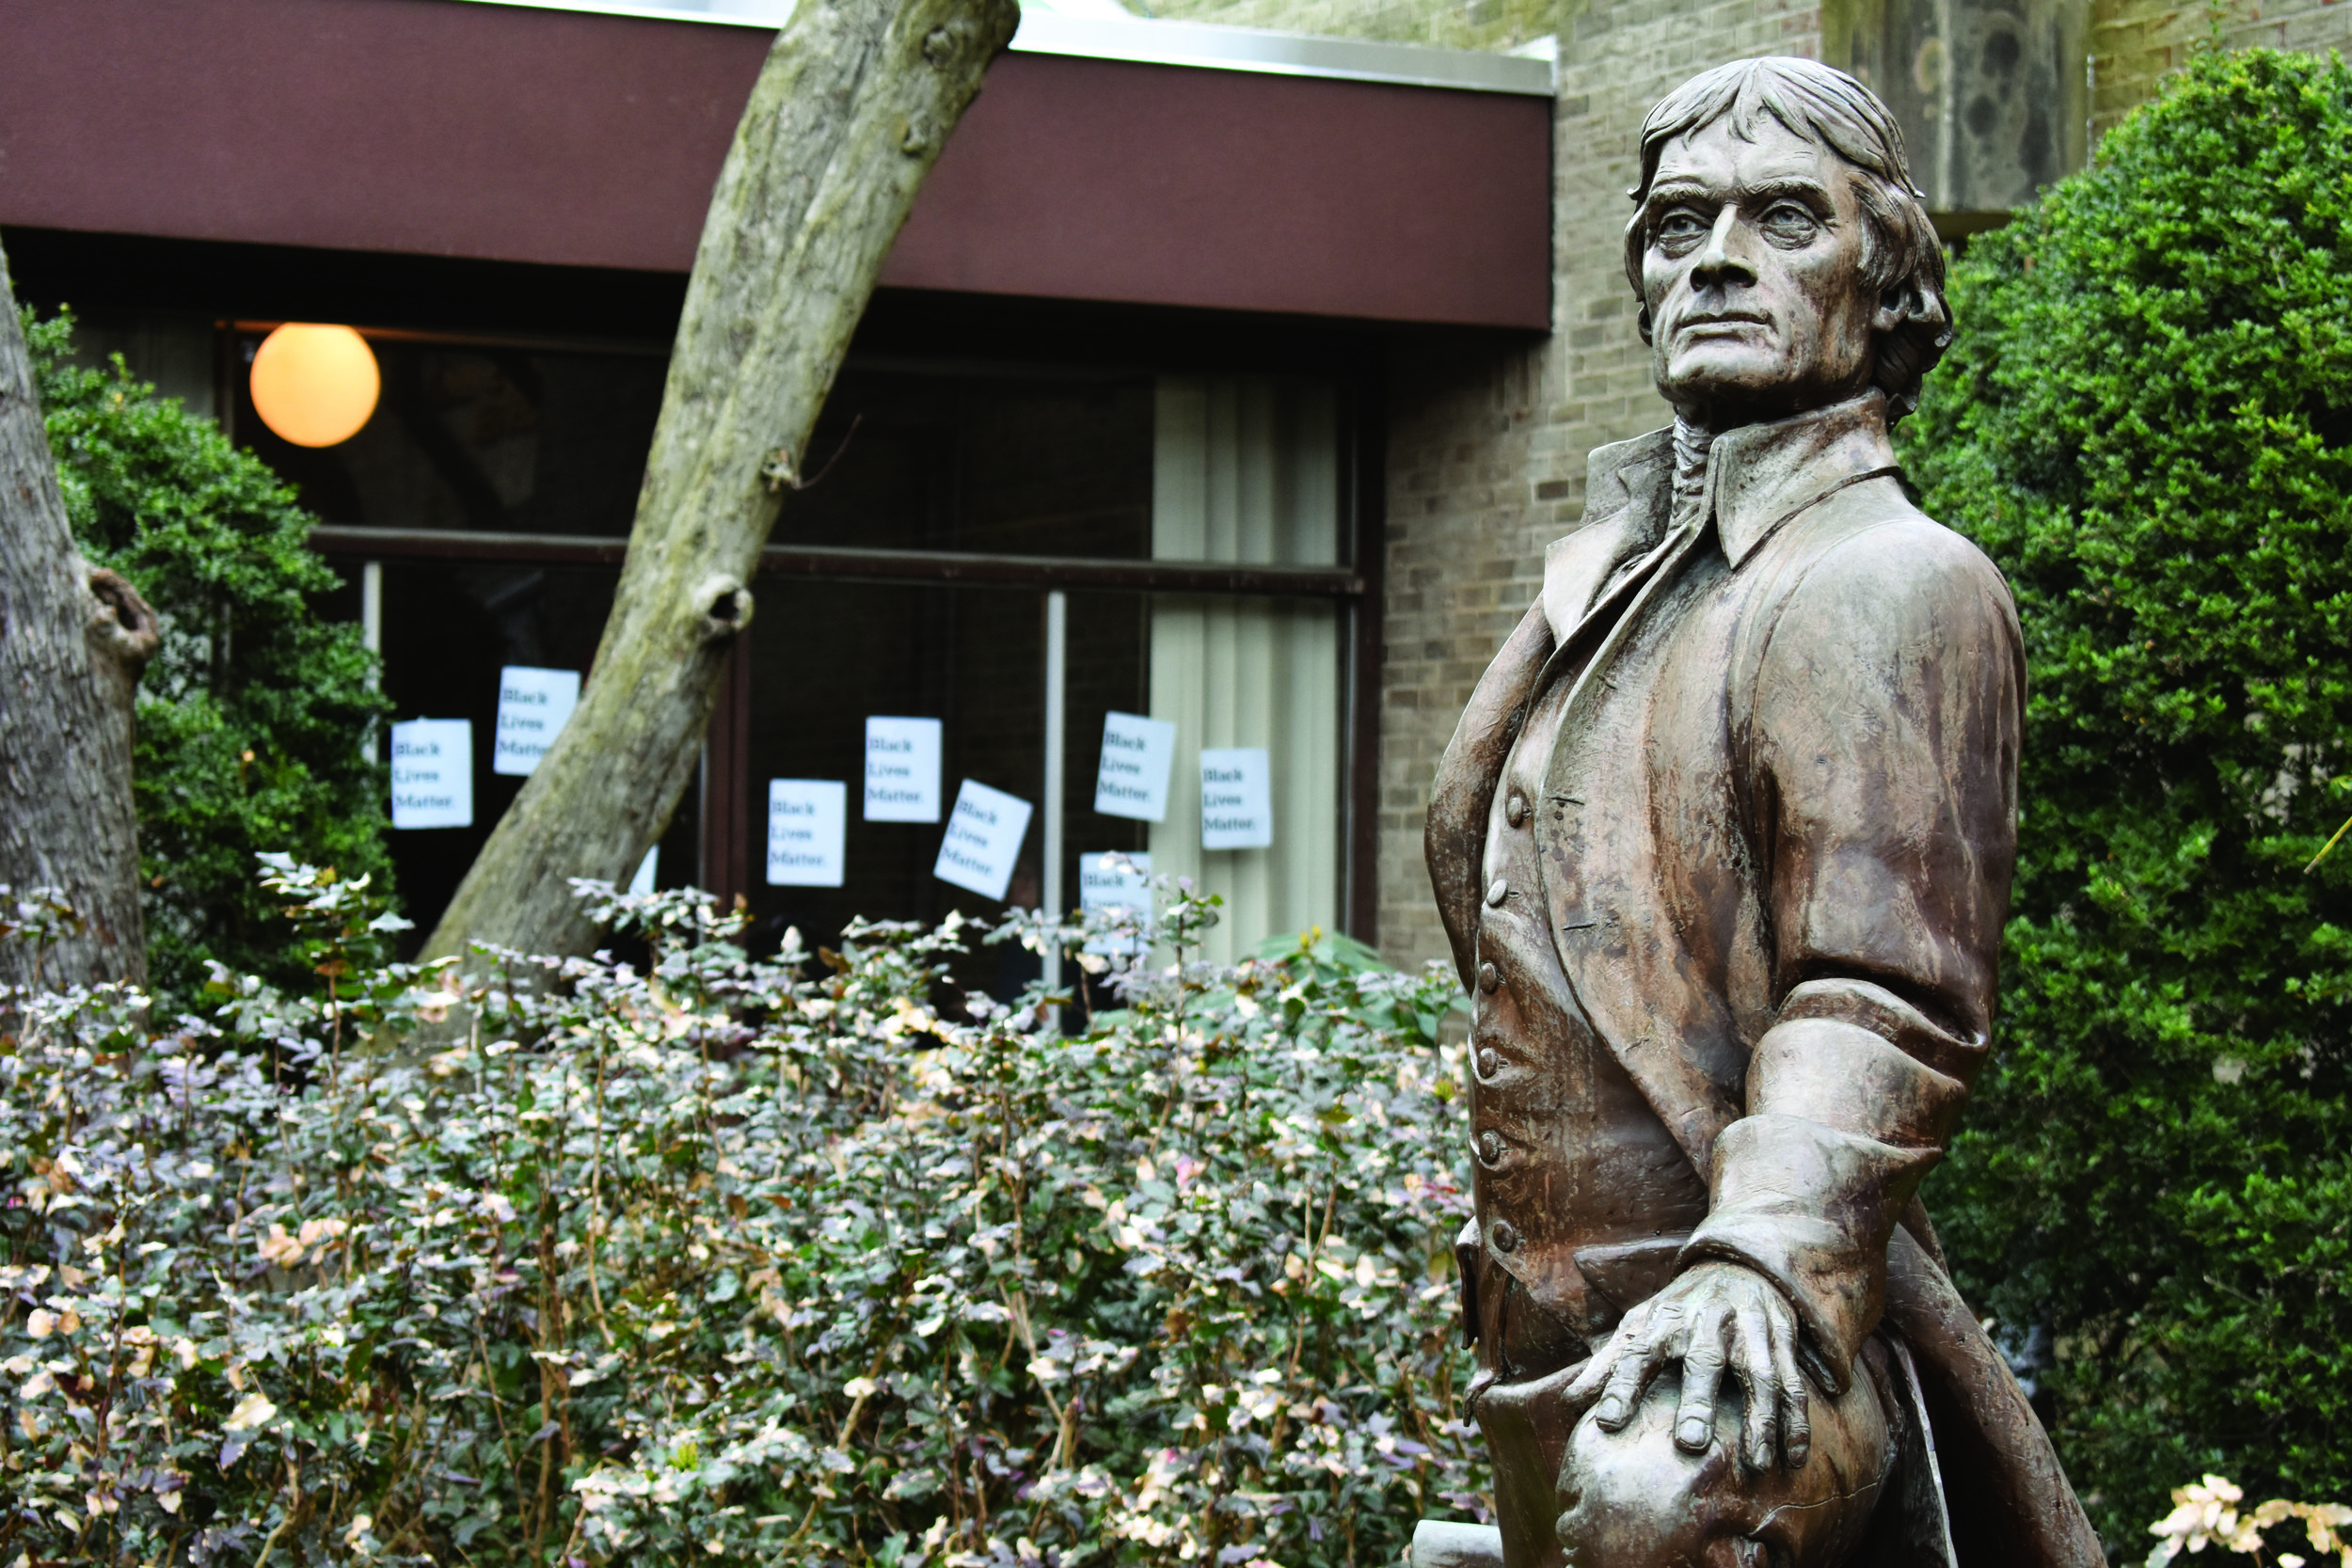 Petition to remove Jefferson statue ignites discourse. Photo courtesy of Peter Soucy/ Hofstra Chronicle